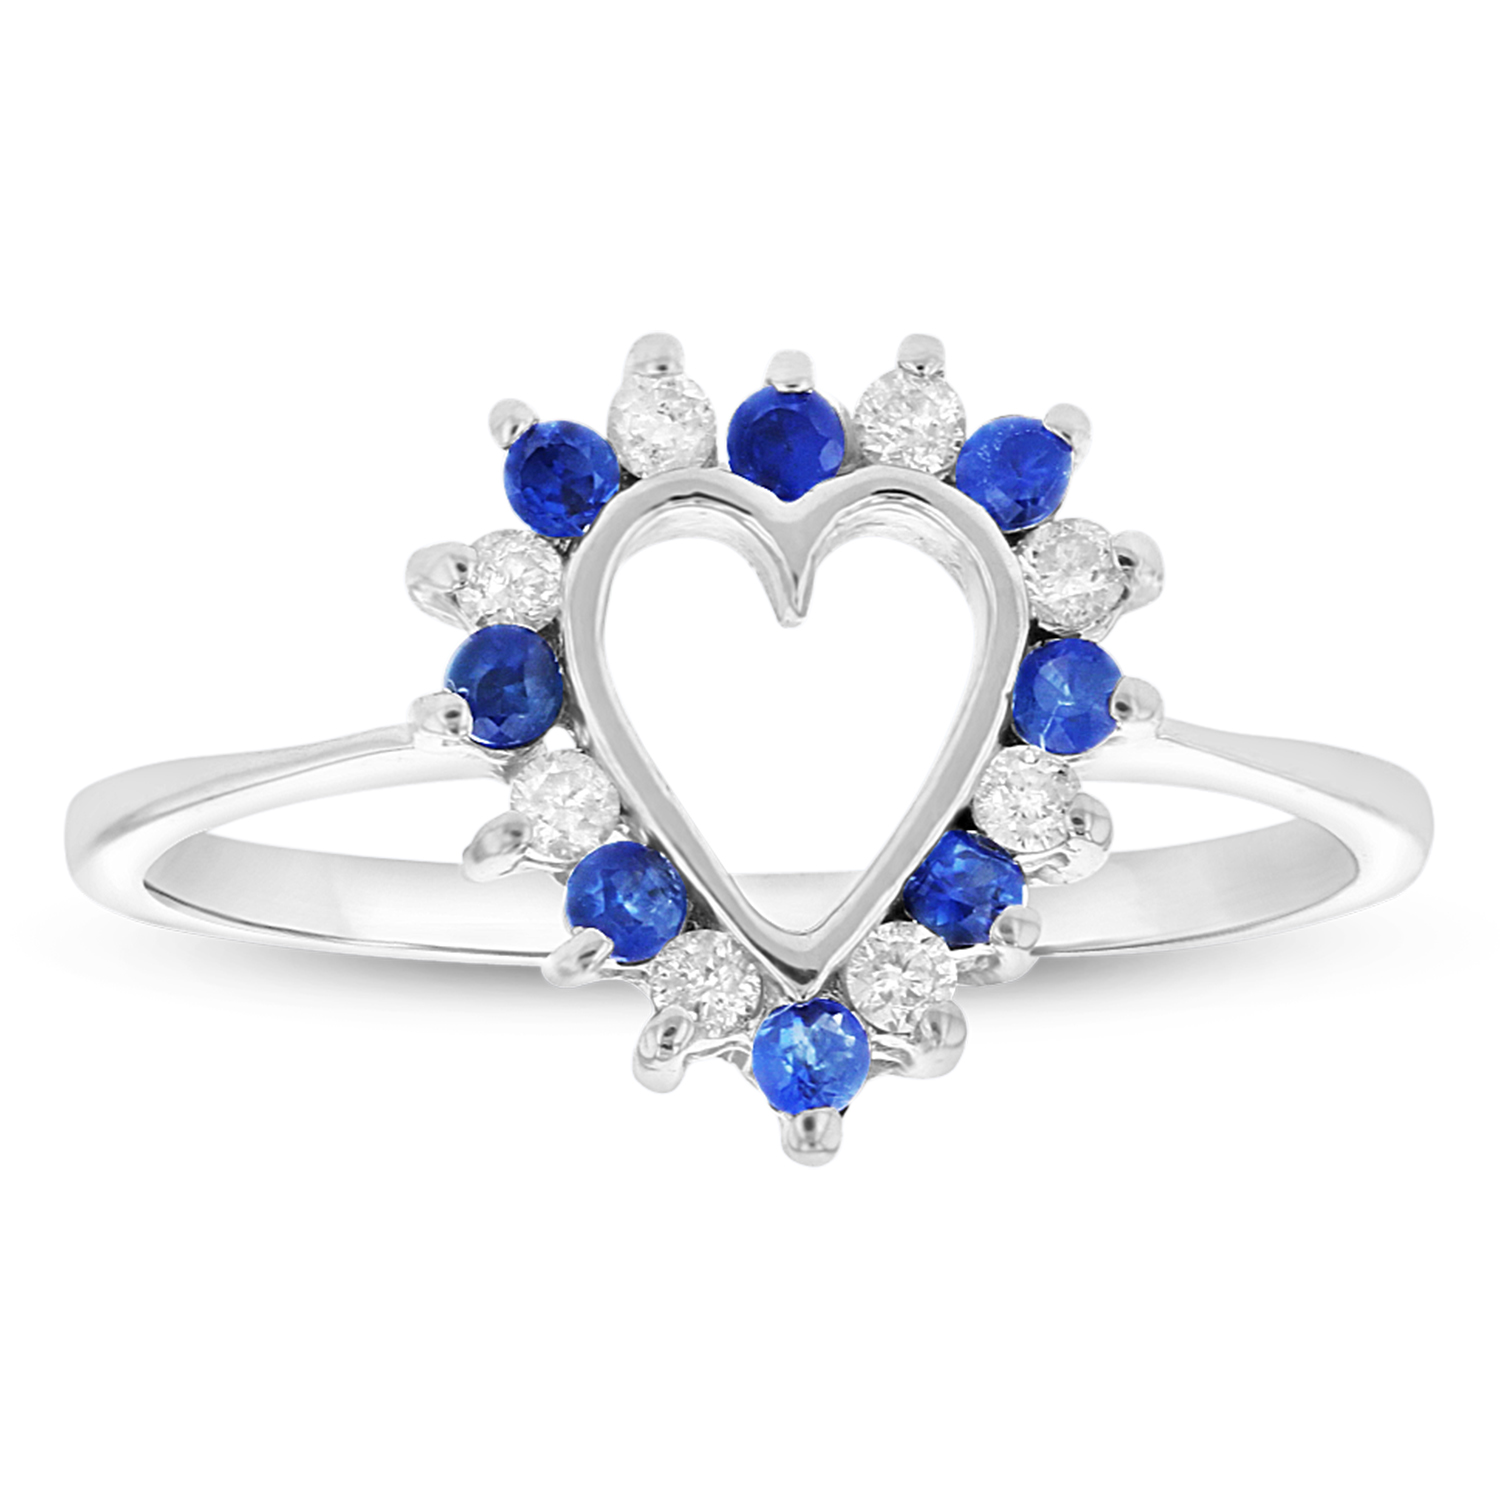 View 0.15ctw Diamond and Sapphire Heart Shaped Ring in 14k White Gold